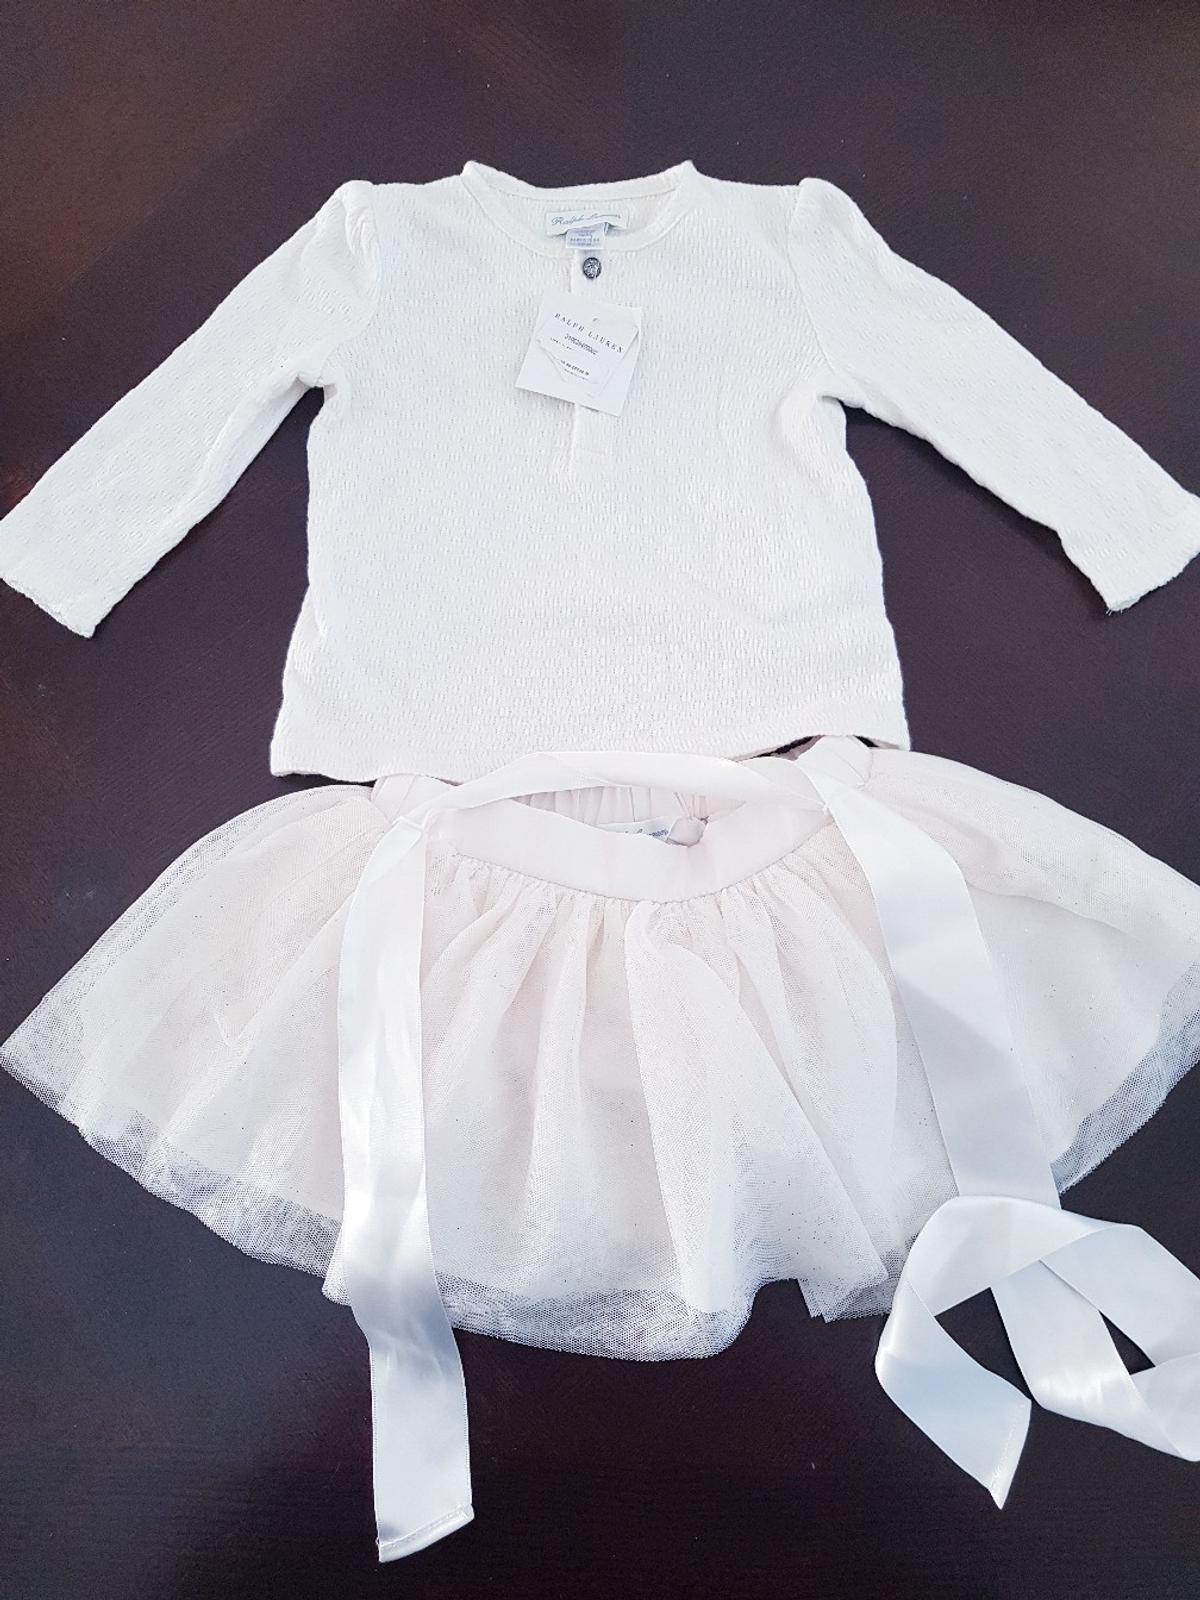 Brand New and no longer required. age 6 months. perfect for a party/photo shoot! still has the tags and is genuine. can purchase separately if needed.